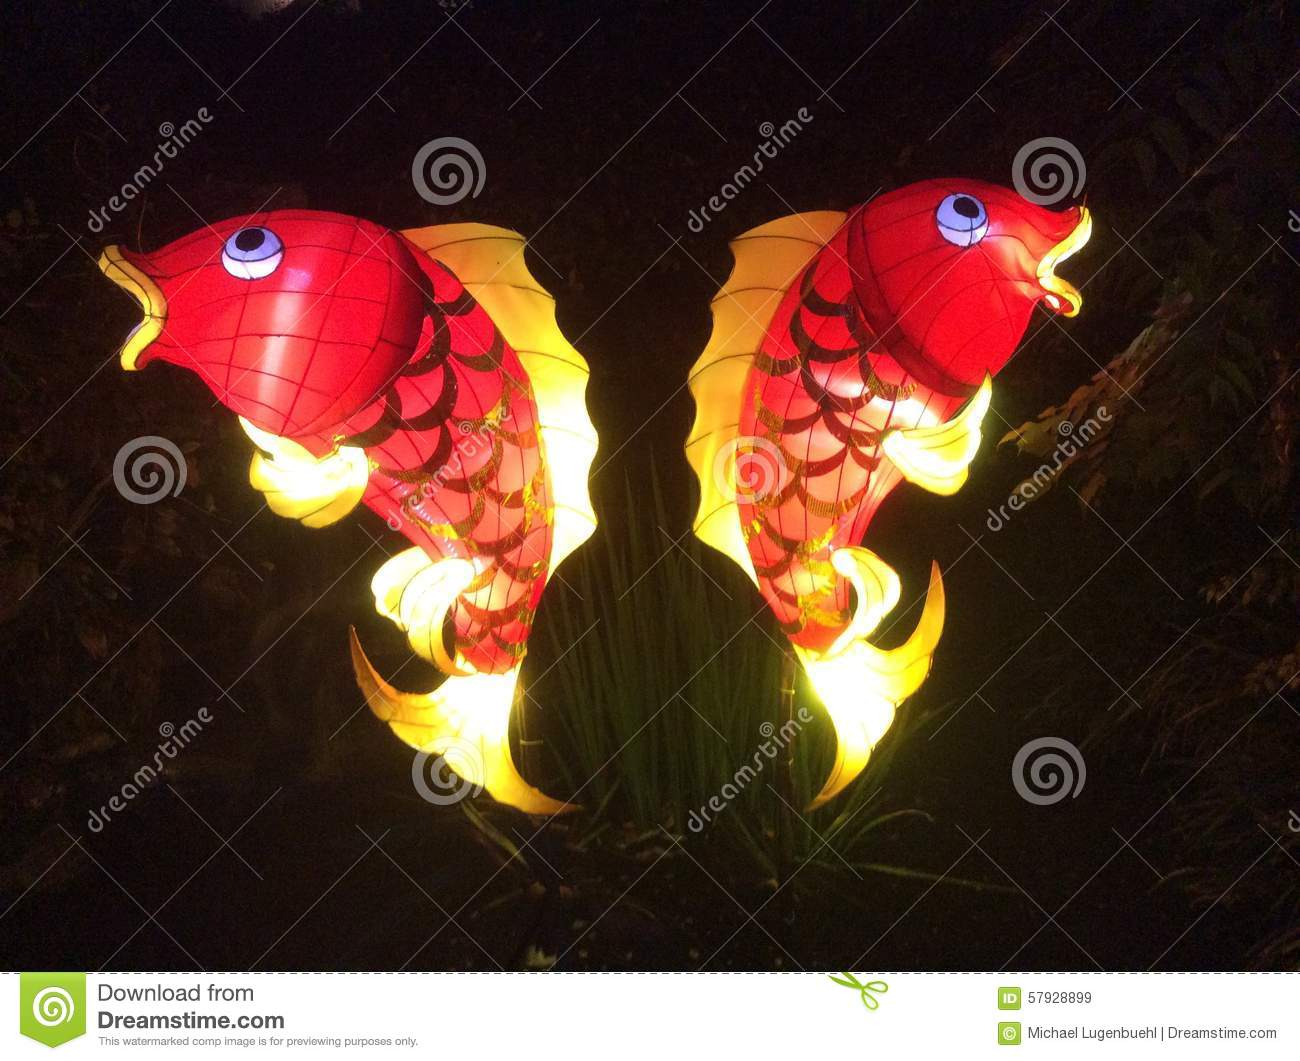 symmetrical red coi fish lantern stock photo image 57928899 angelfish clipart Angelfish Outline